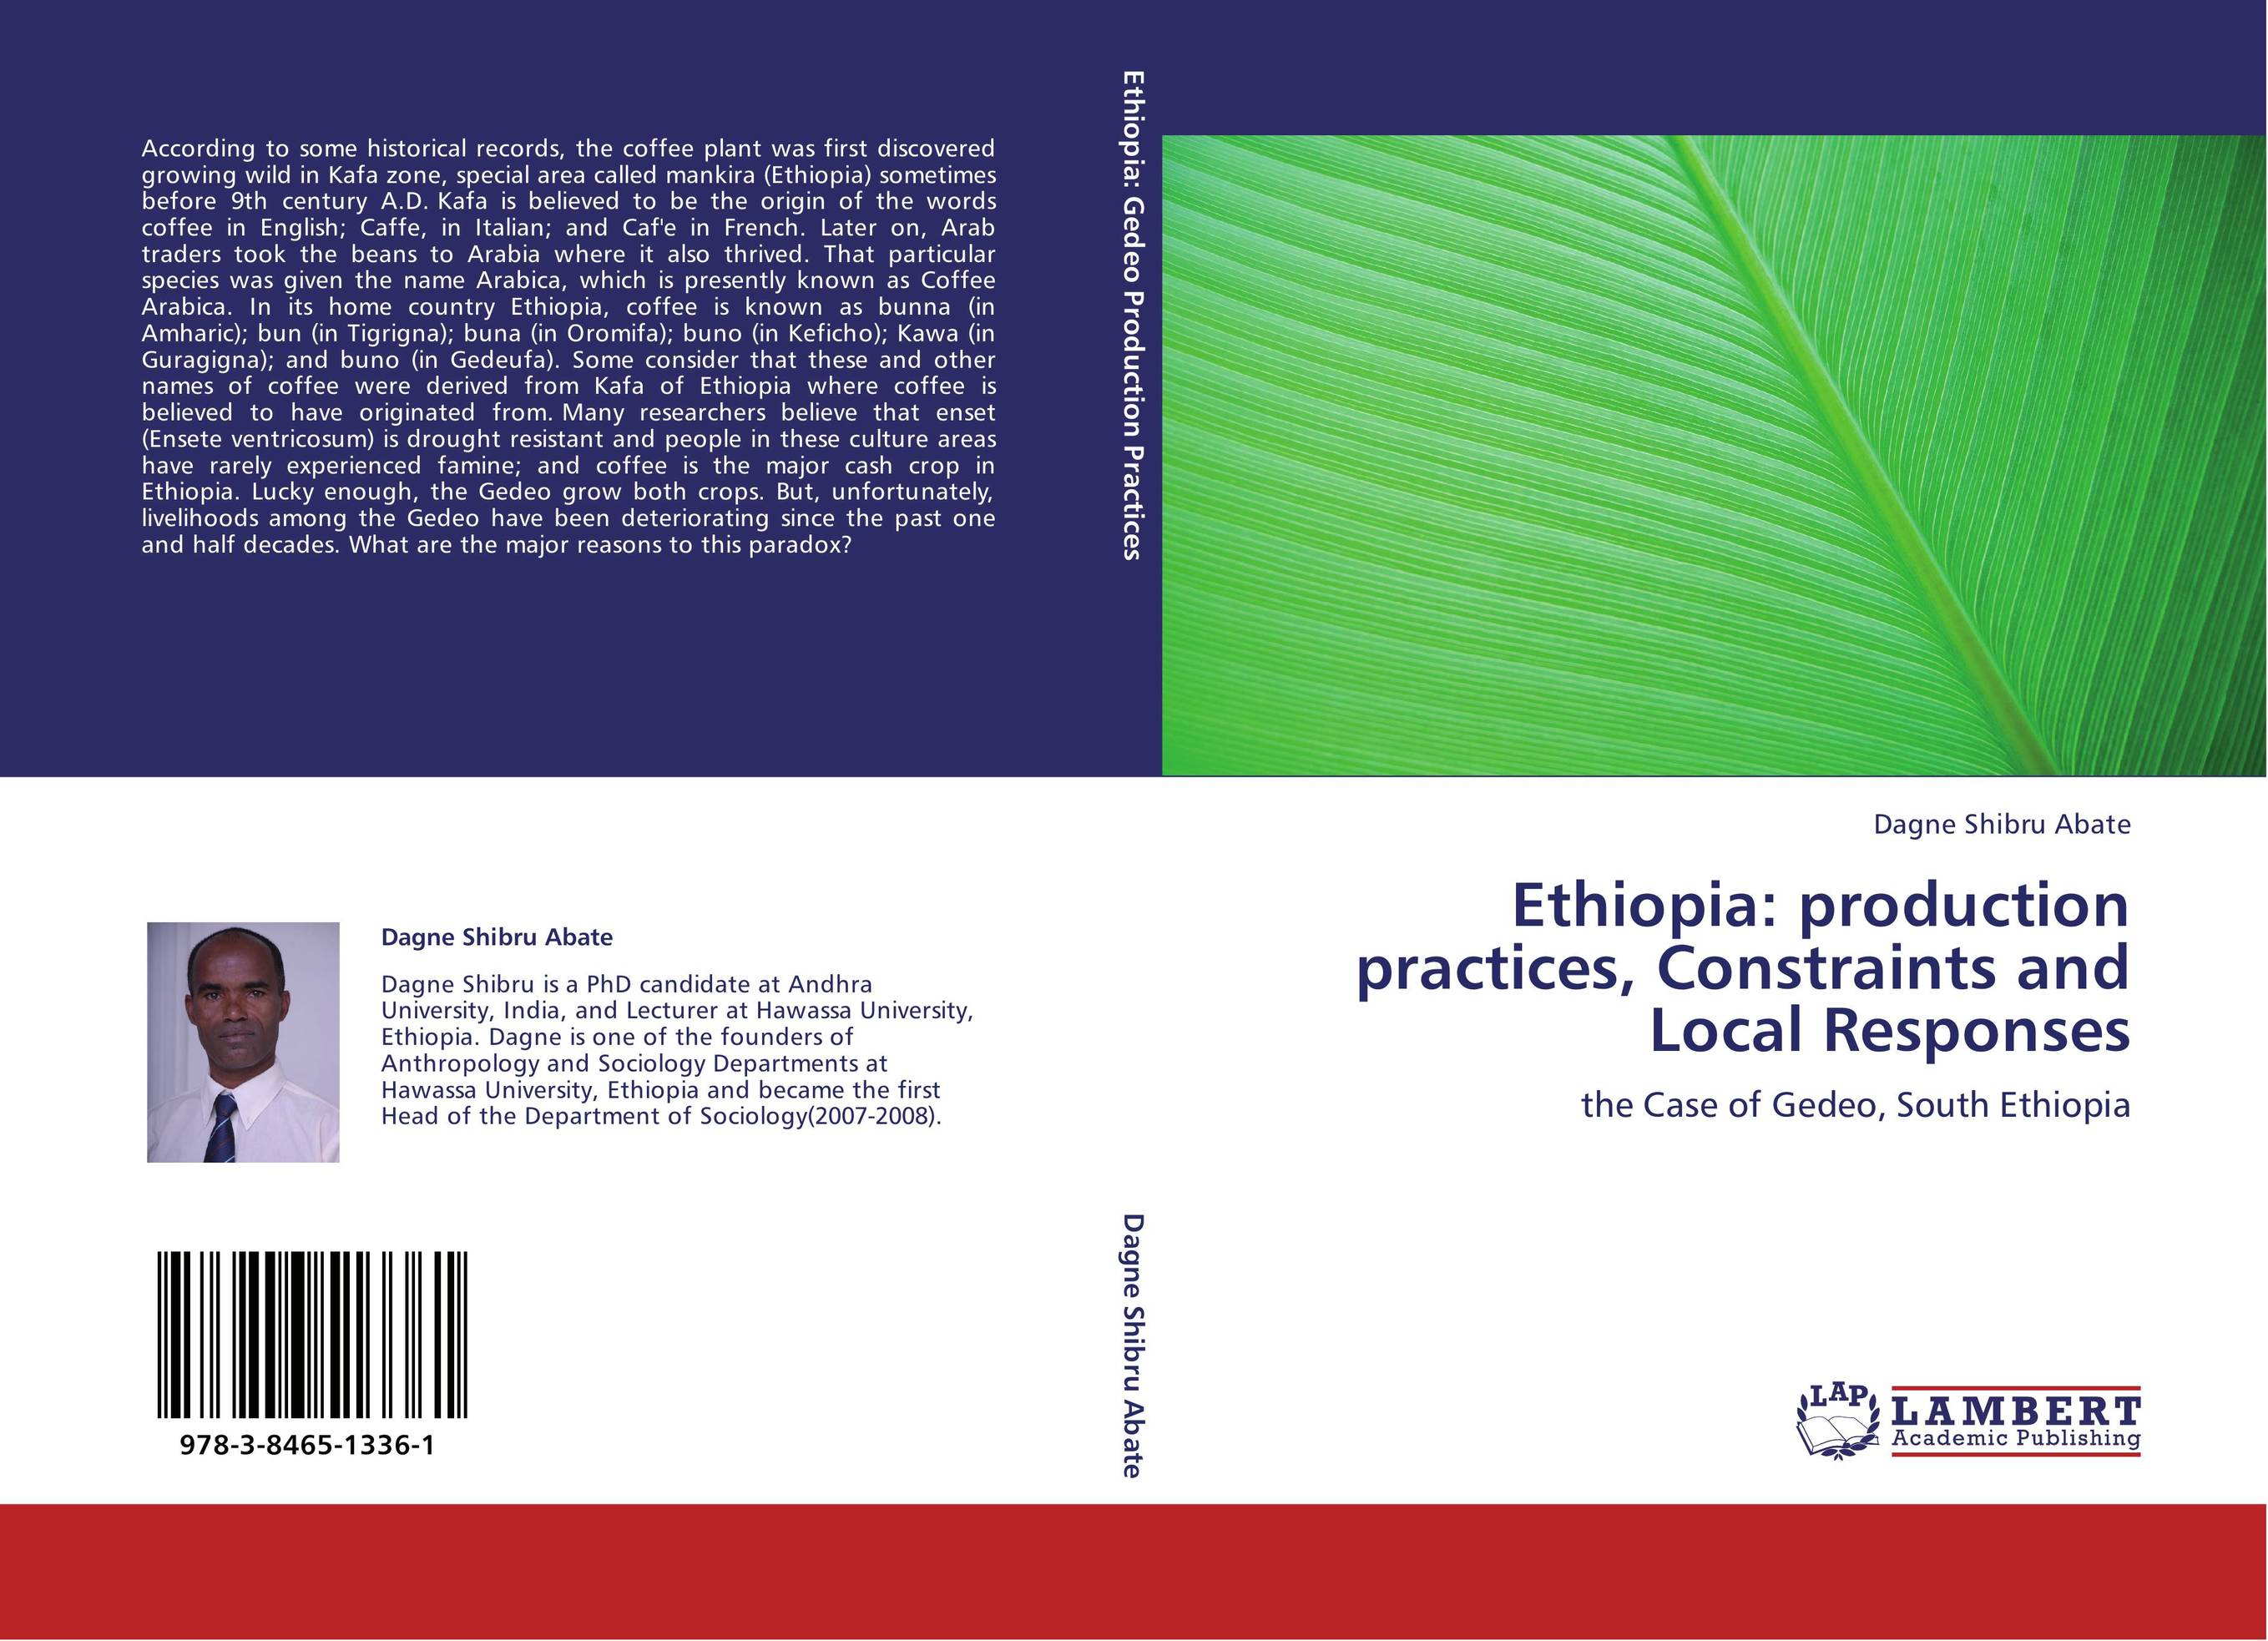 9783846513361 Ethiopia production practices, Constraints and Local Responses